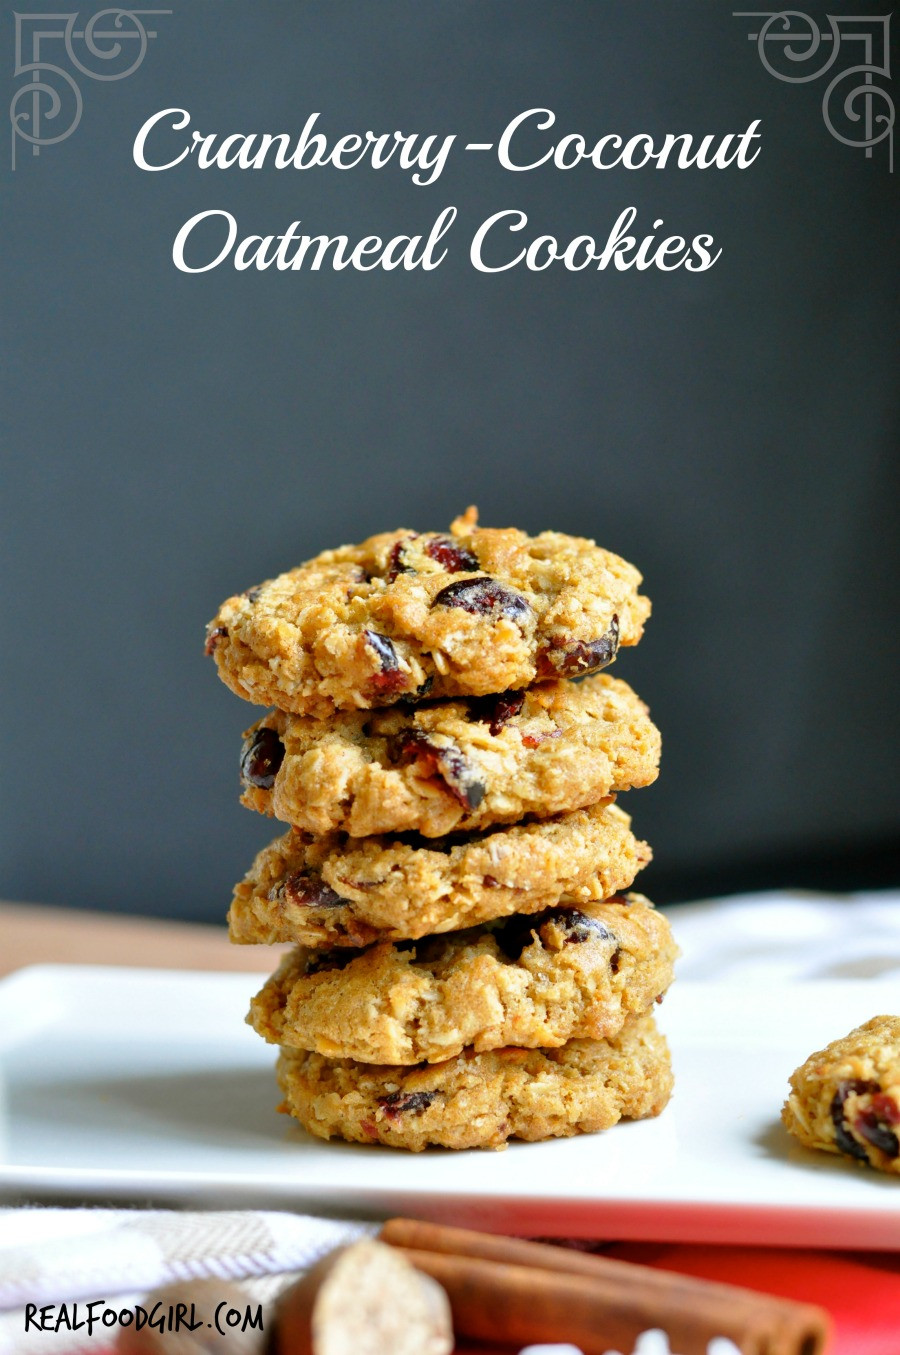 Coconut Oatmeal Cookies  Cranberry Coconut Oatmeal Cookies